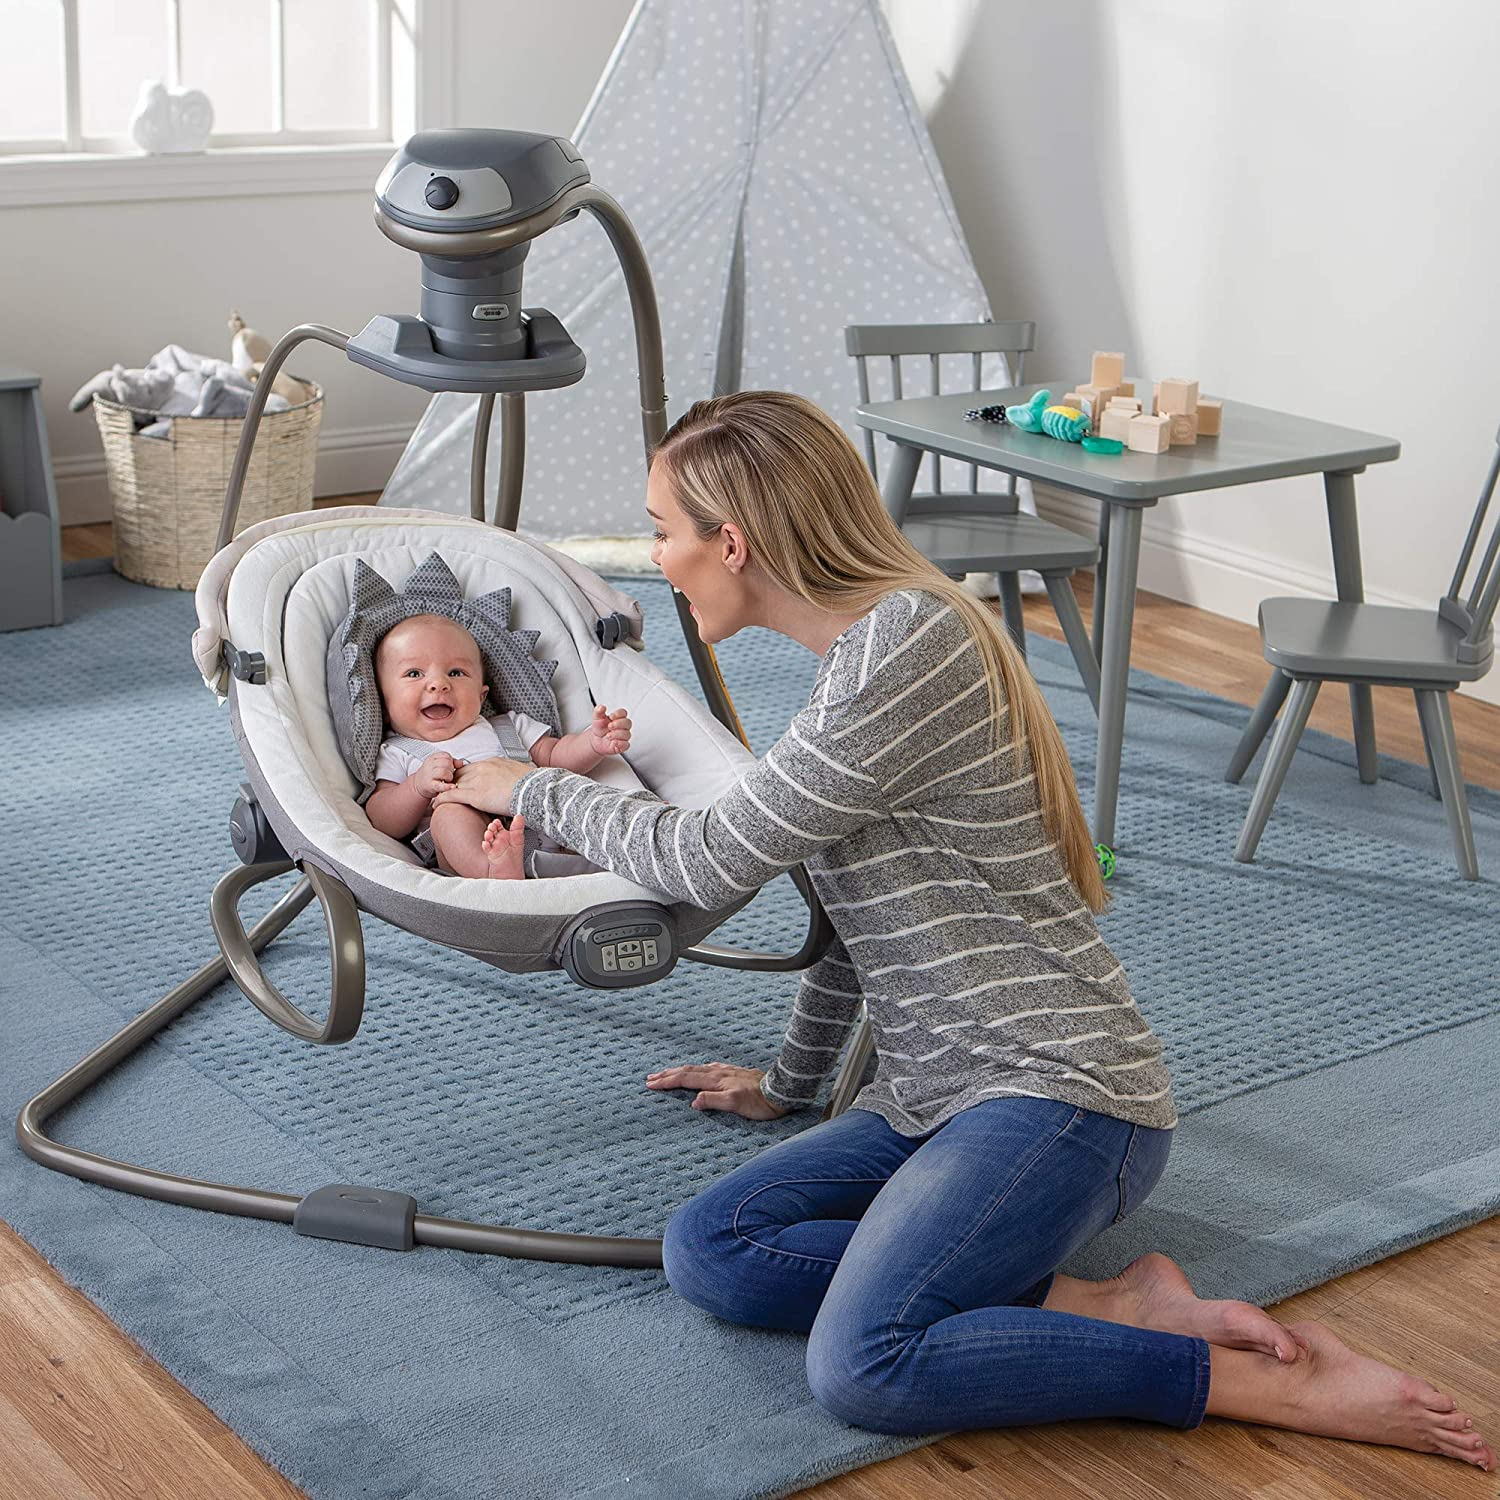 Amazon.com: Boppy Preferred - Soporte para cabeza y cuello ...